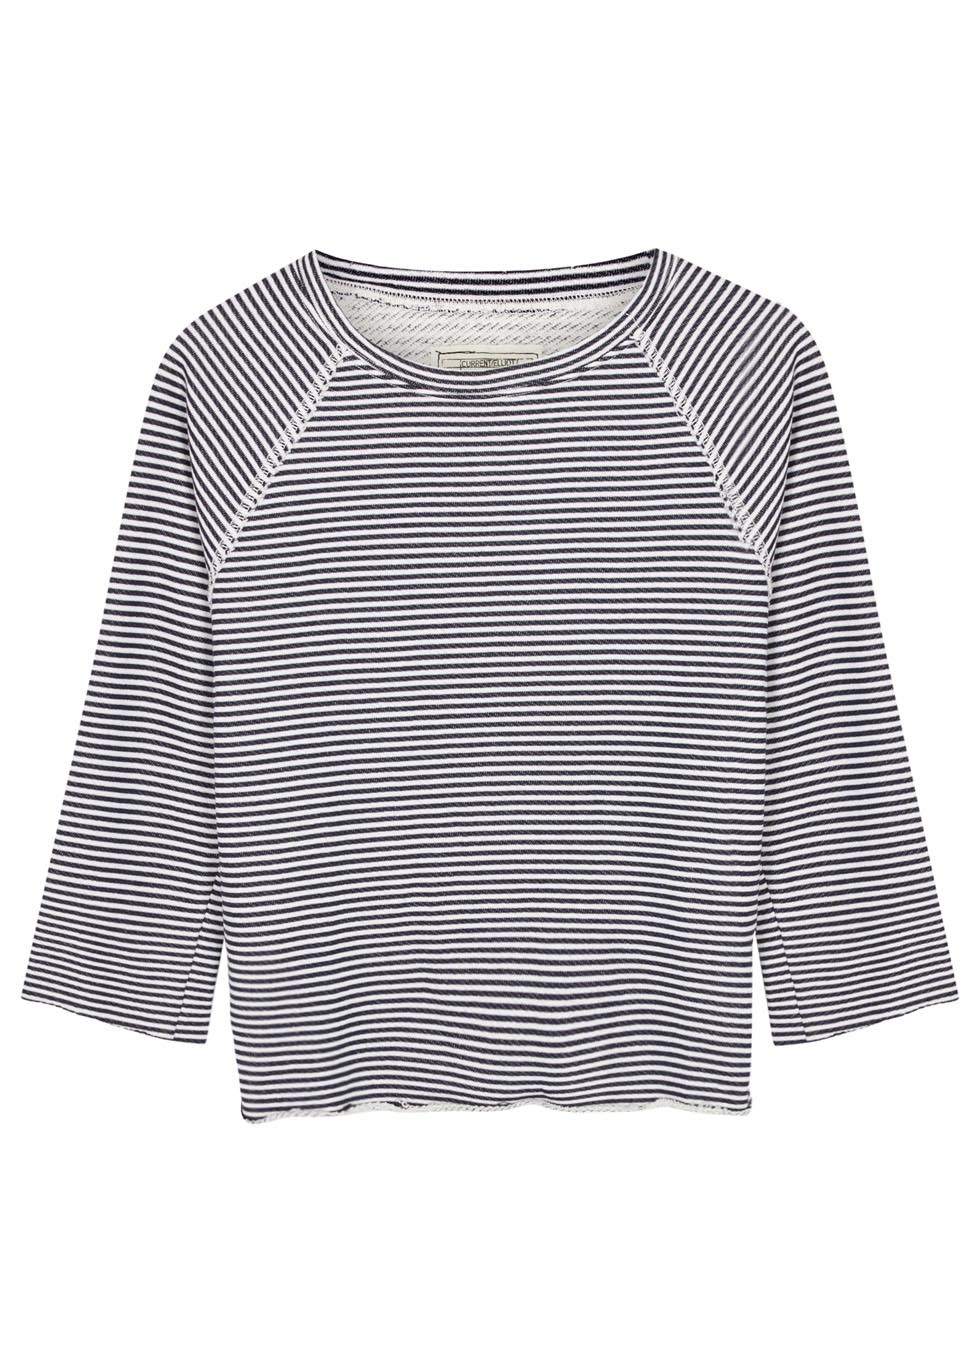 Navy And White Striped Cotton Blend Top - neckline: round neck; pattern: horizontal stripes; secondary colour: white; predominant colour: navy; occasions: casual; length: standard; style: top; fibres: cotton - mix; fit: body skimming; sleeve length: 3/4 length; sleeve style: standard; pattern type: fabric; pattern size: standard; texture group: jersey - stretchy/drapey; season: s/s 2016; wardrobe: basic